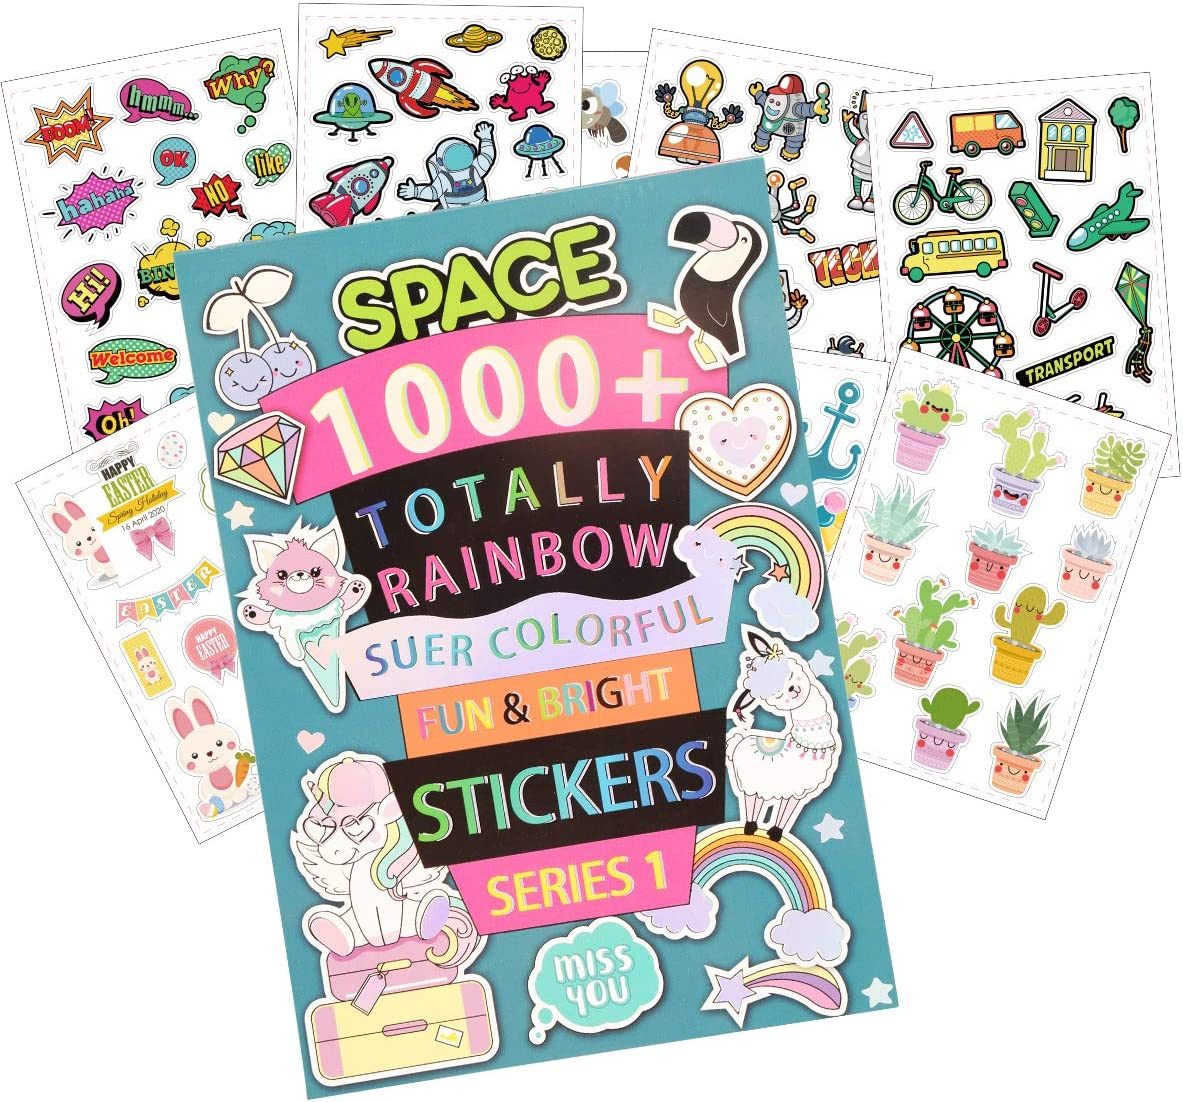 SuperStyle 1000+ Stickers Book for Kids, Cute Sticker Books for Girls/Boys 4-8, Collection Alphabet, Animal, Plant, Food, Dinosaur, Donut, Mermaid ect., 32 Different Sheets, Super Colorful Stickers